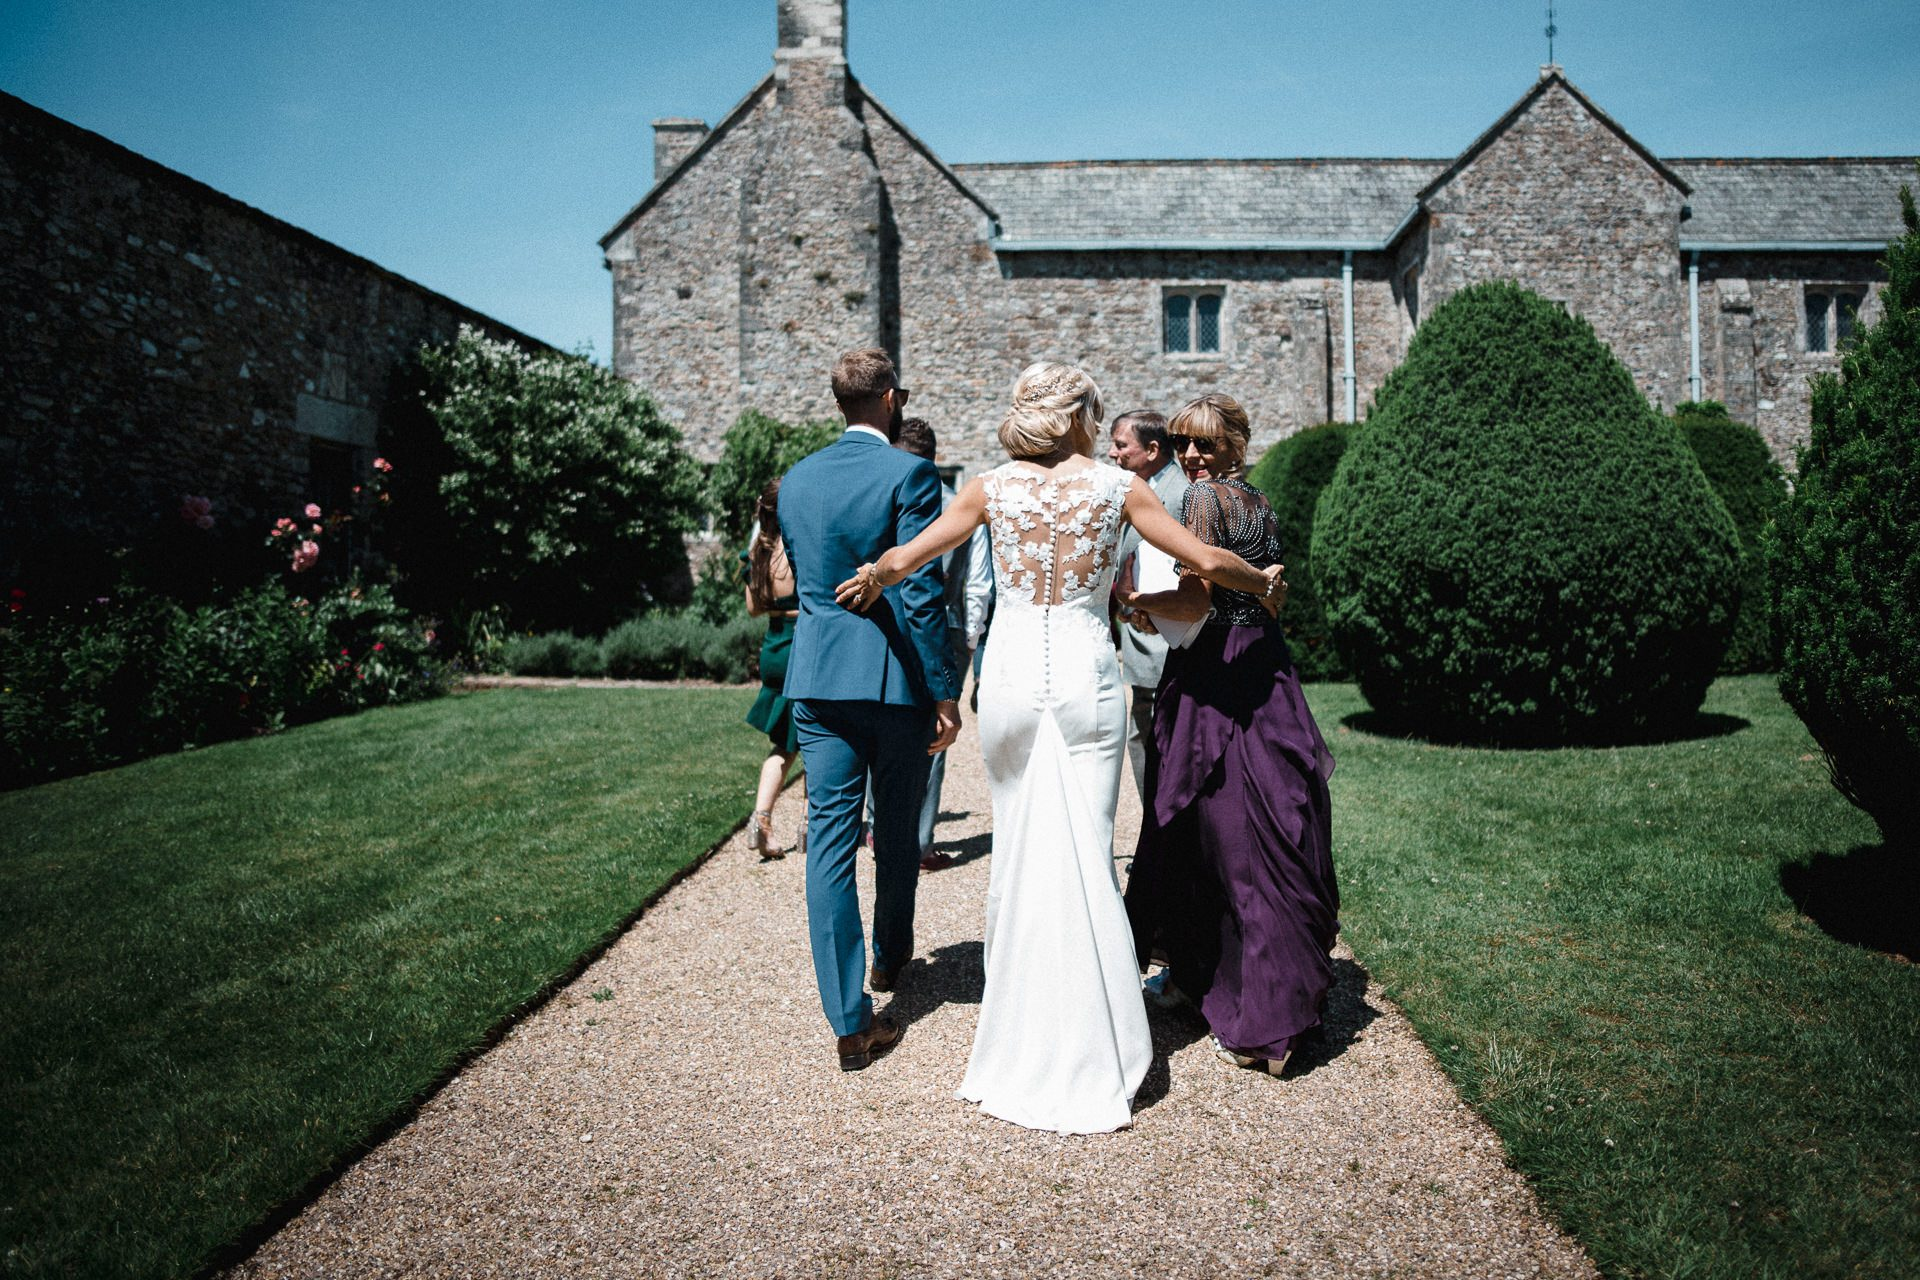 0091-DEVON-SOMERSET-WEDDING-PHOTOGRAPHER-0401-BEST-OF-2019-LOUISE-MAY-DEVON-SOMERSET-WEDDING-PHOTOGRAPHY-LM2_1688